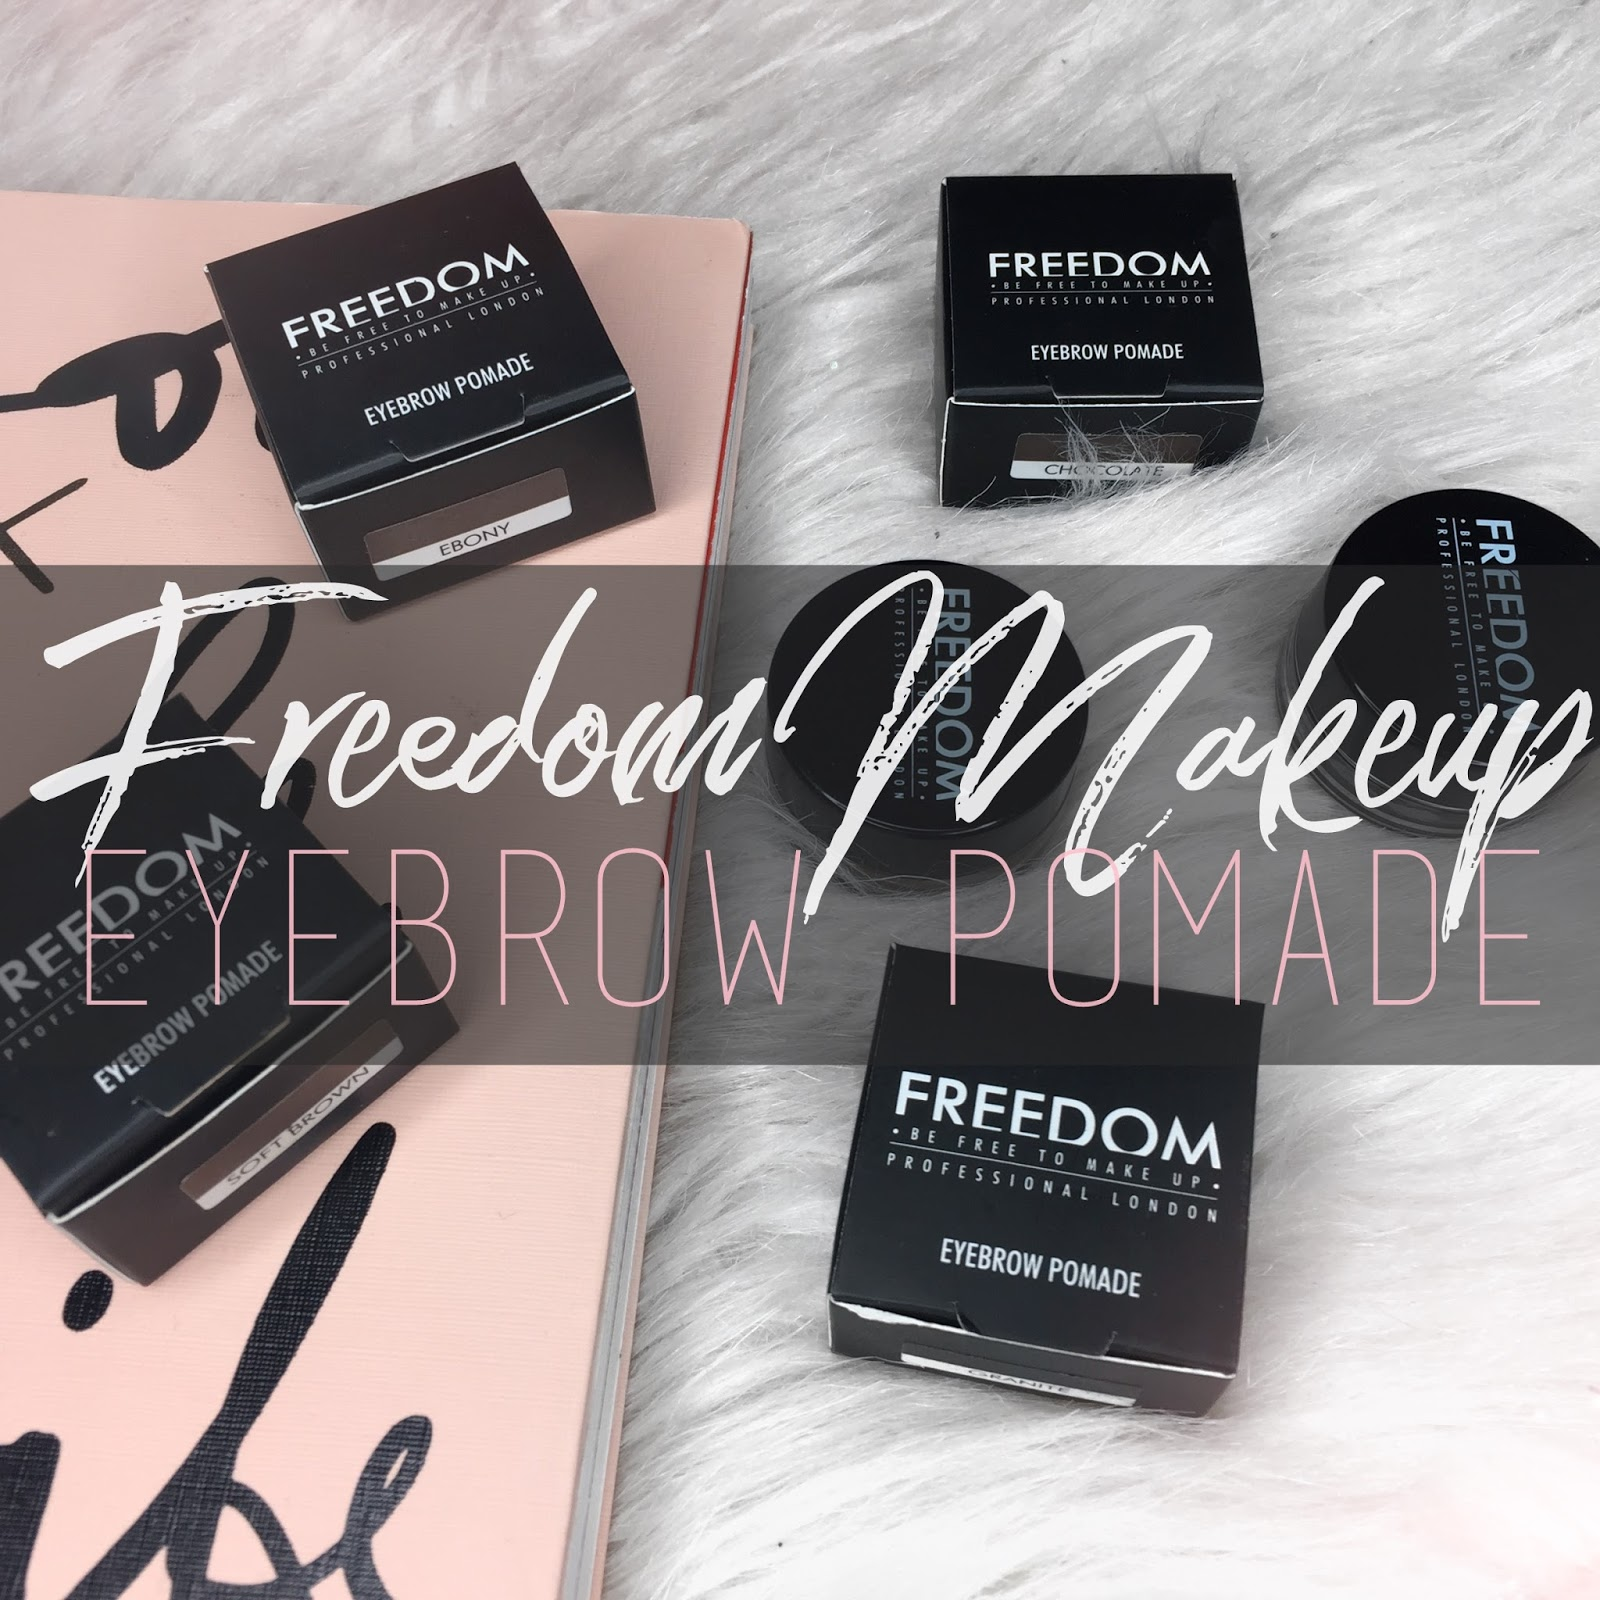 FREEDOM Makeup: Pro Brow Pomade perfect for Brown Hair.